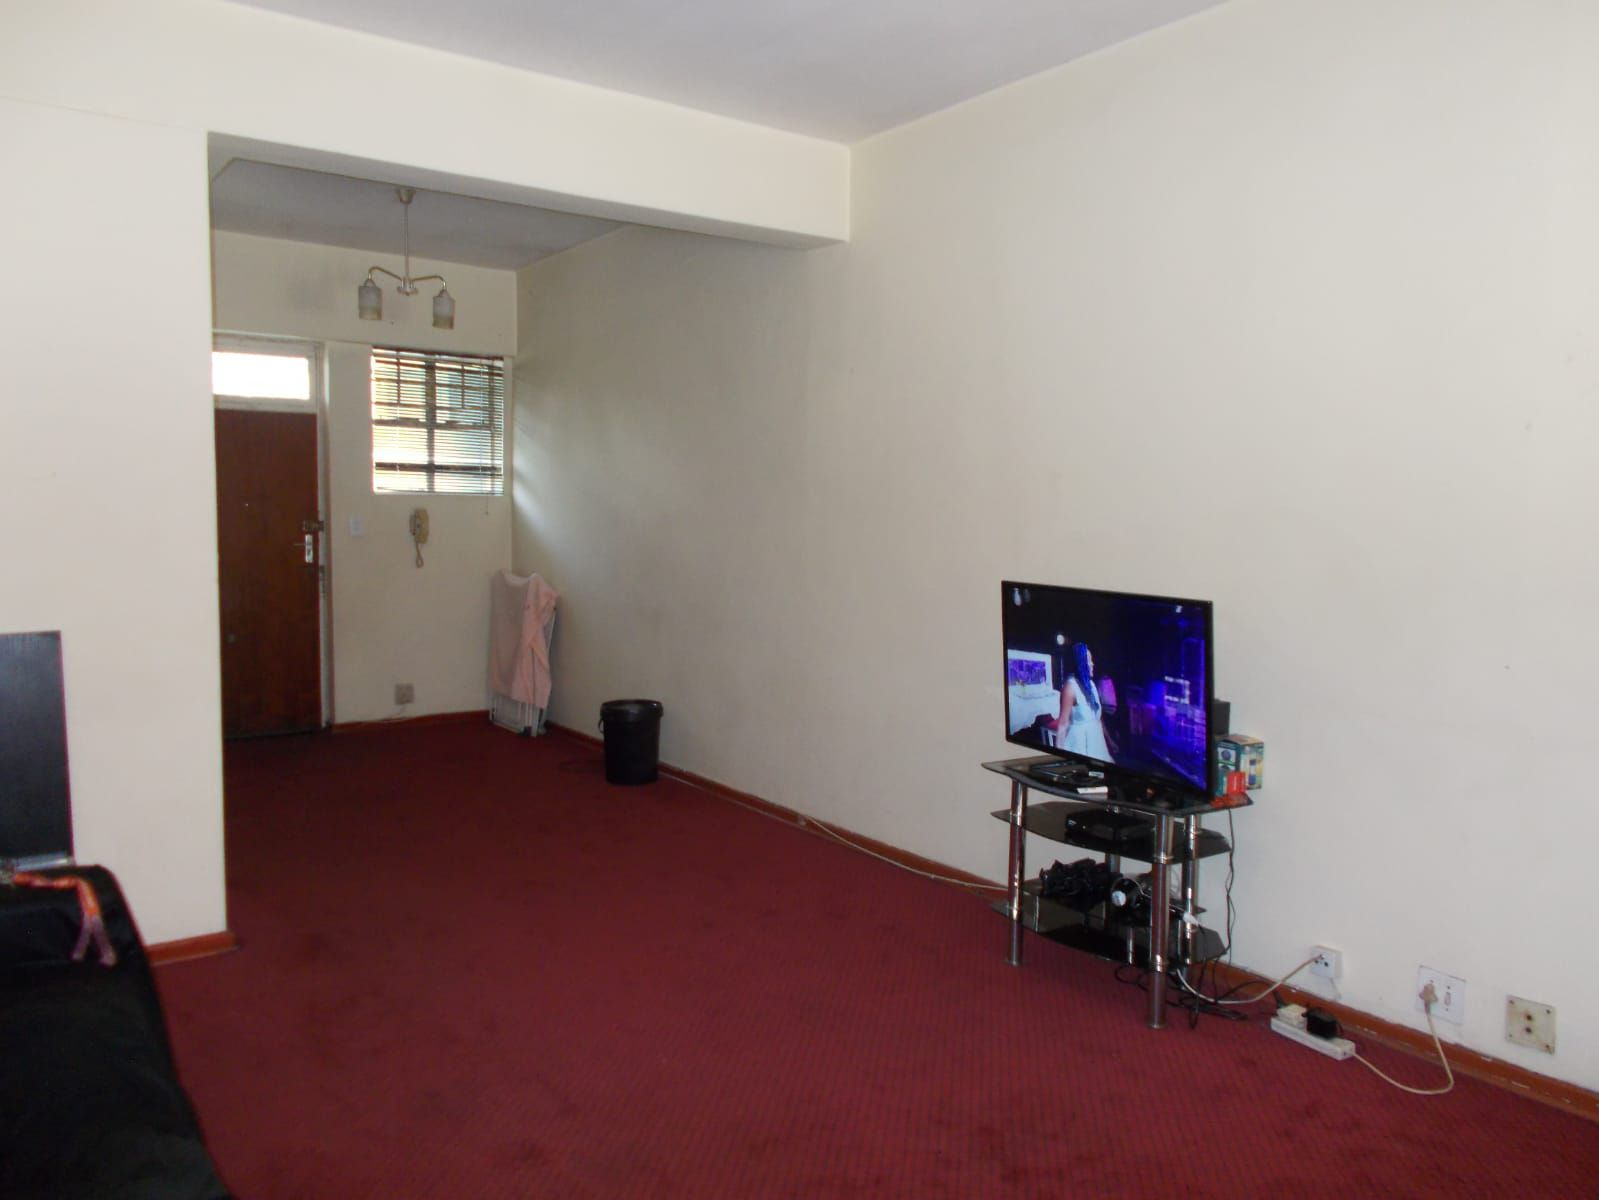 Apartment in Hillbrow - WhatsApp Image 2021-01-12 at 13.03.09 (2).jpeg